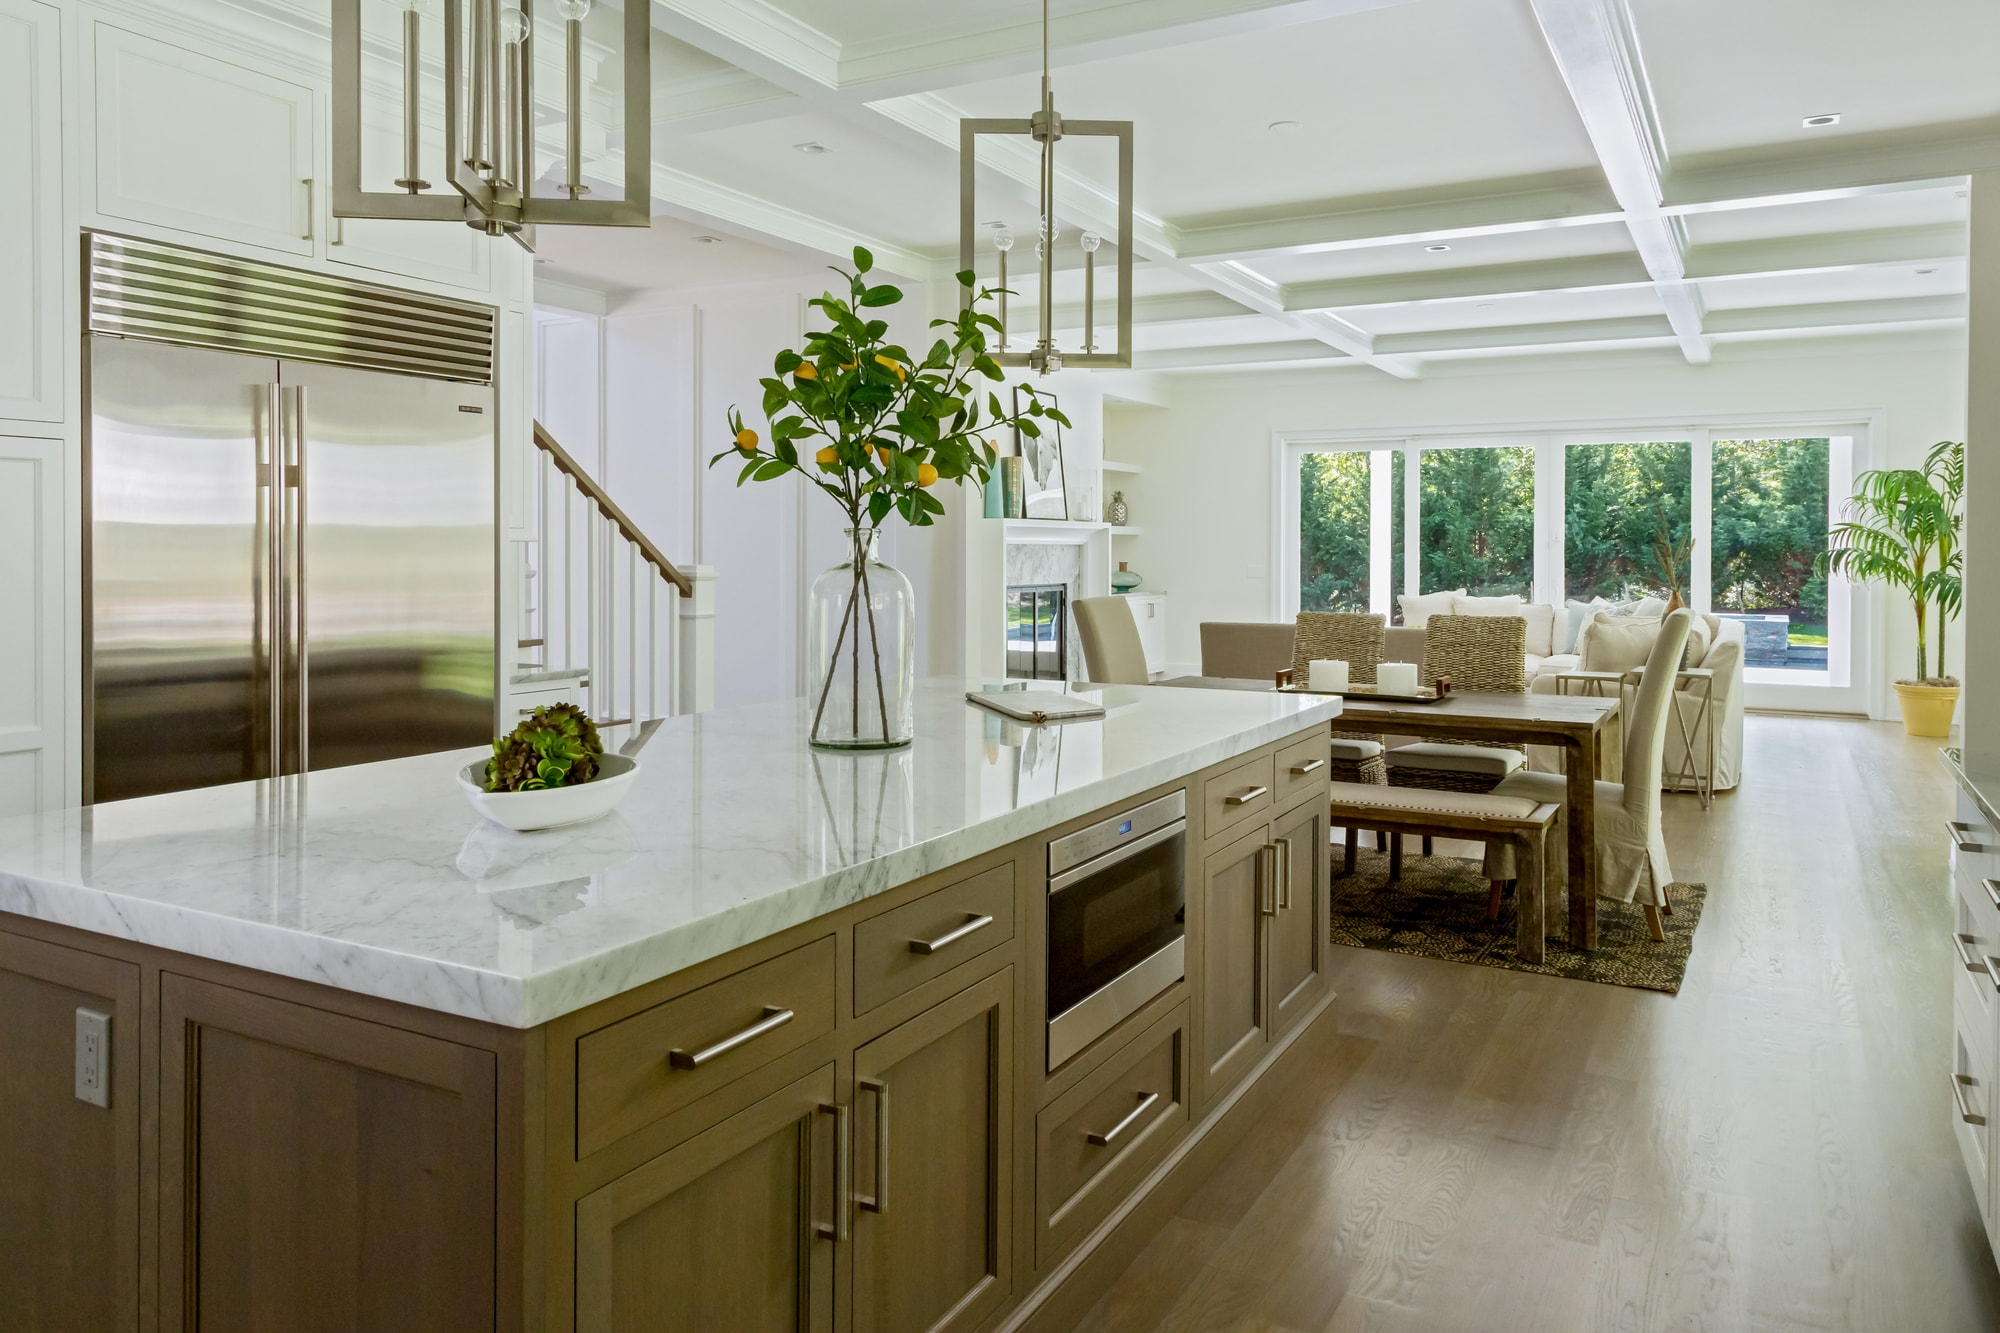 Copy of Transitional style kitchen with center kitchen island